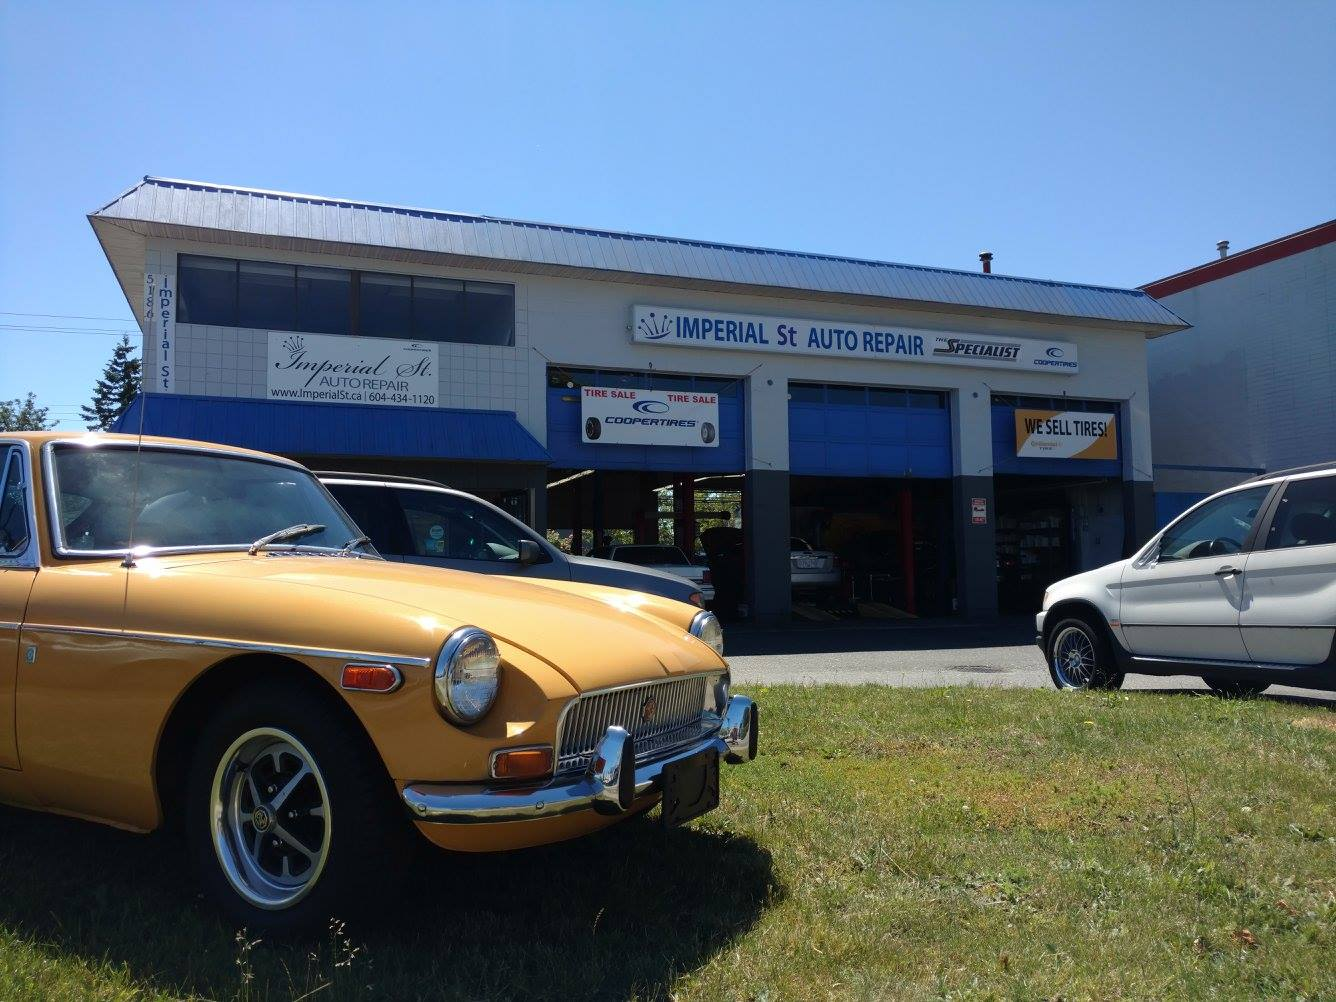 Imperial Street Auto Repair Shop Image